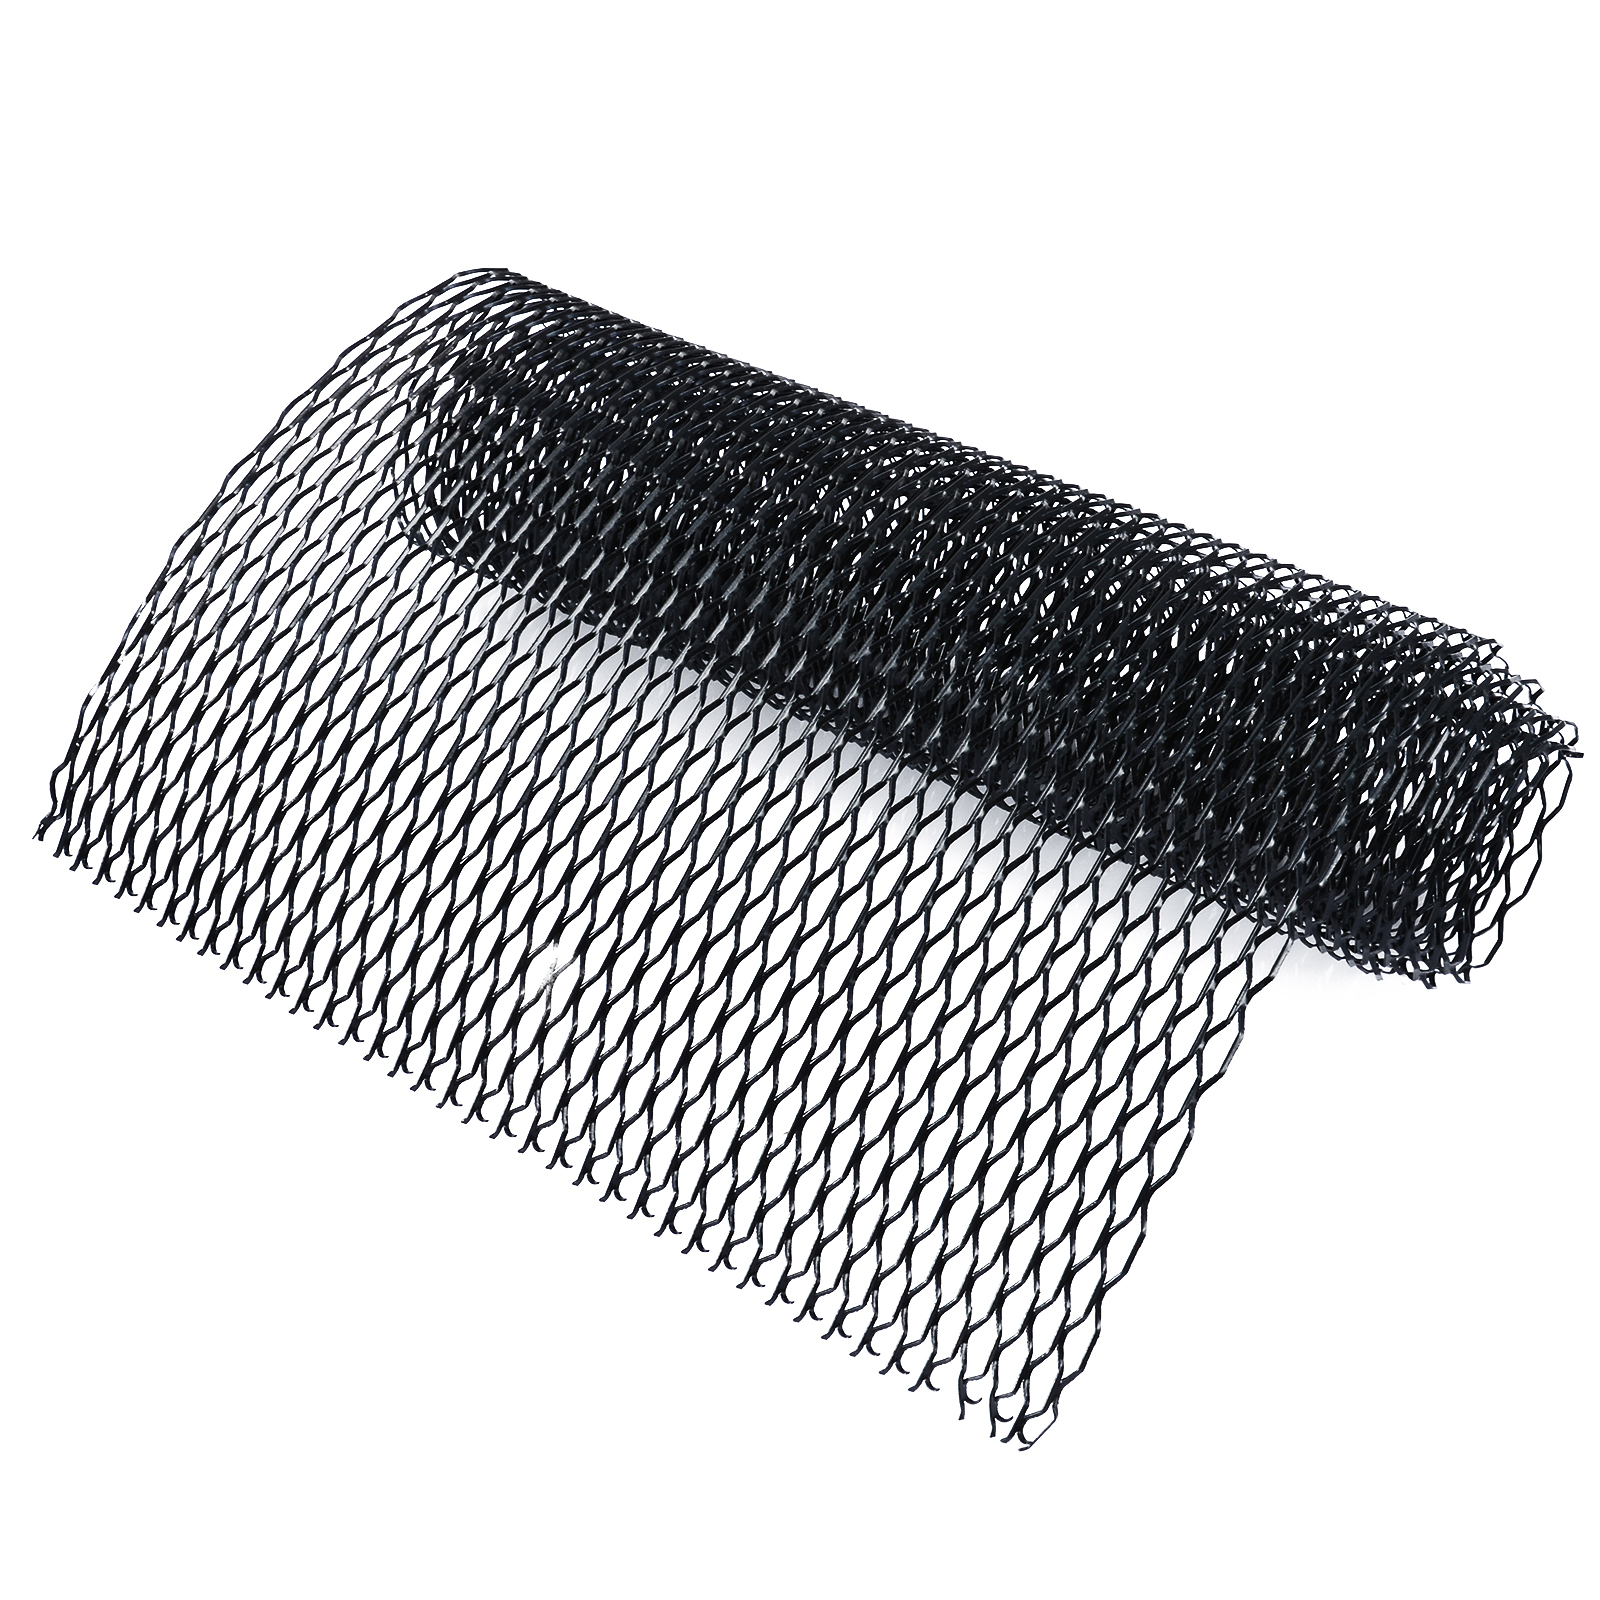 For Car Exterior Protection 1pc 100x33cm Black Universal Car Vehicle Body Grille Net Aluminum Mesh Grill Section Mayitr|Racing Grills| |  - title=